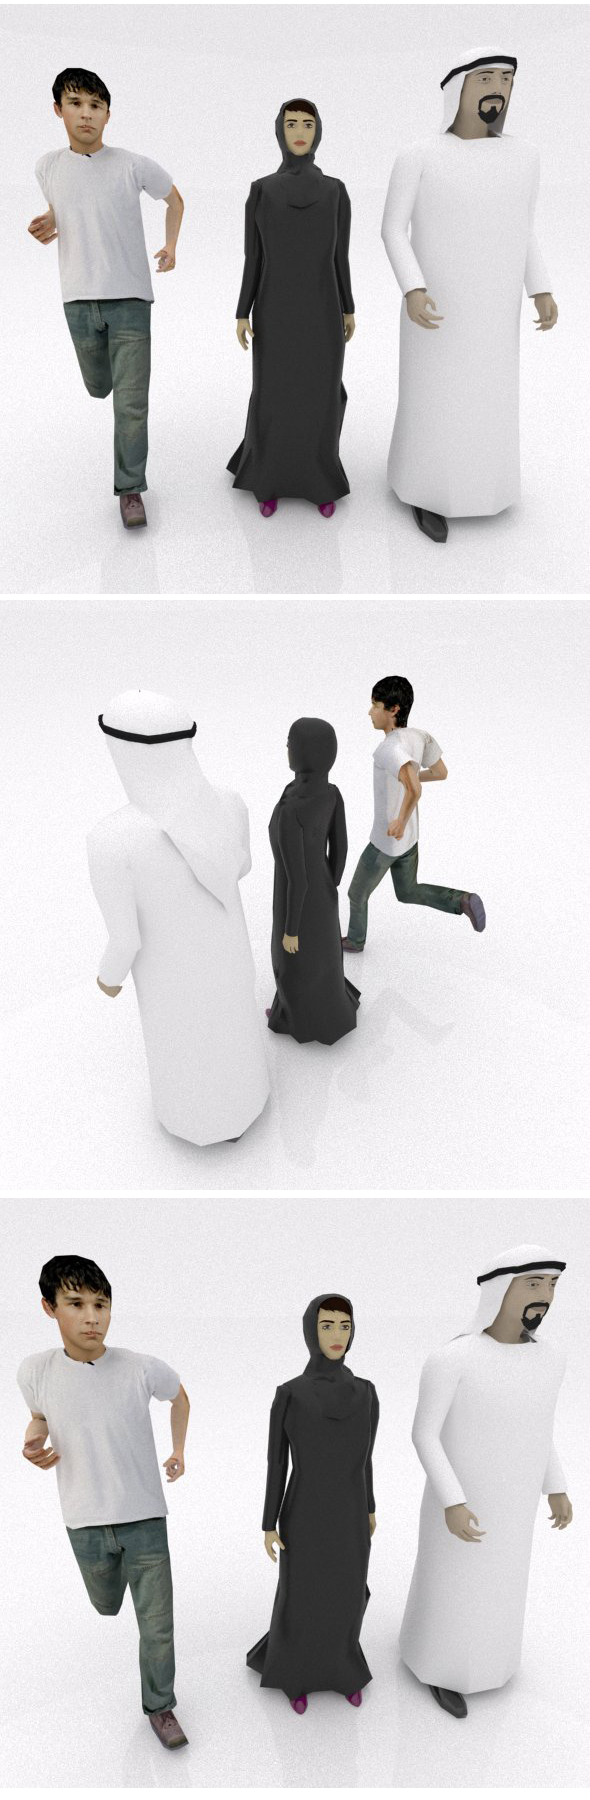 Emirate's couple with kid - 3DOcean Item for Sale